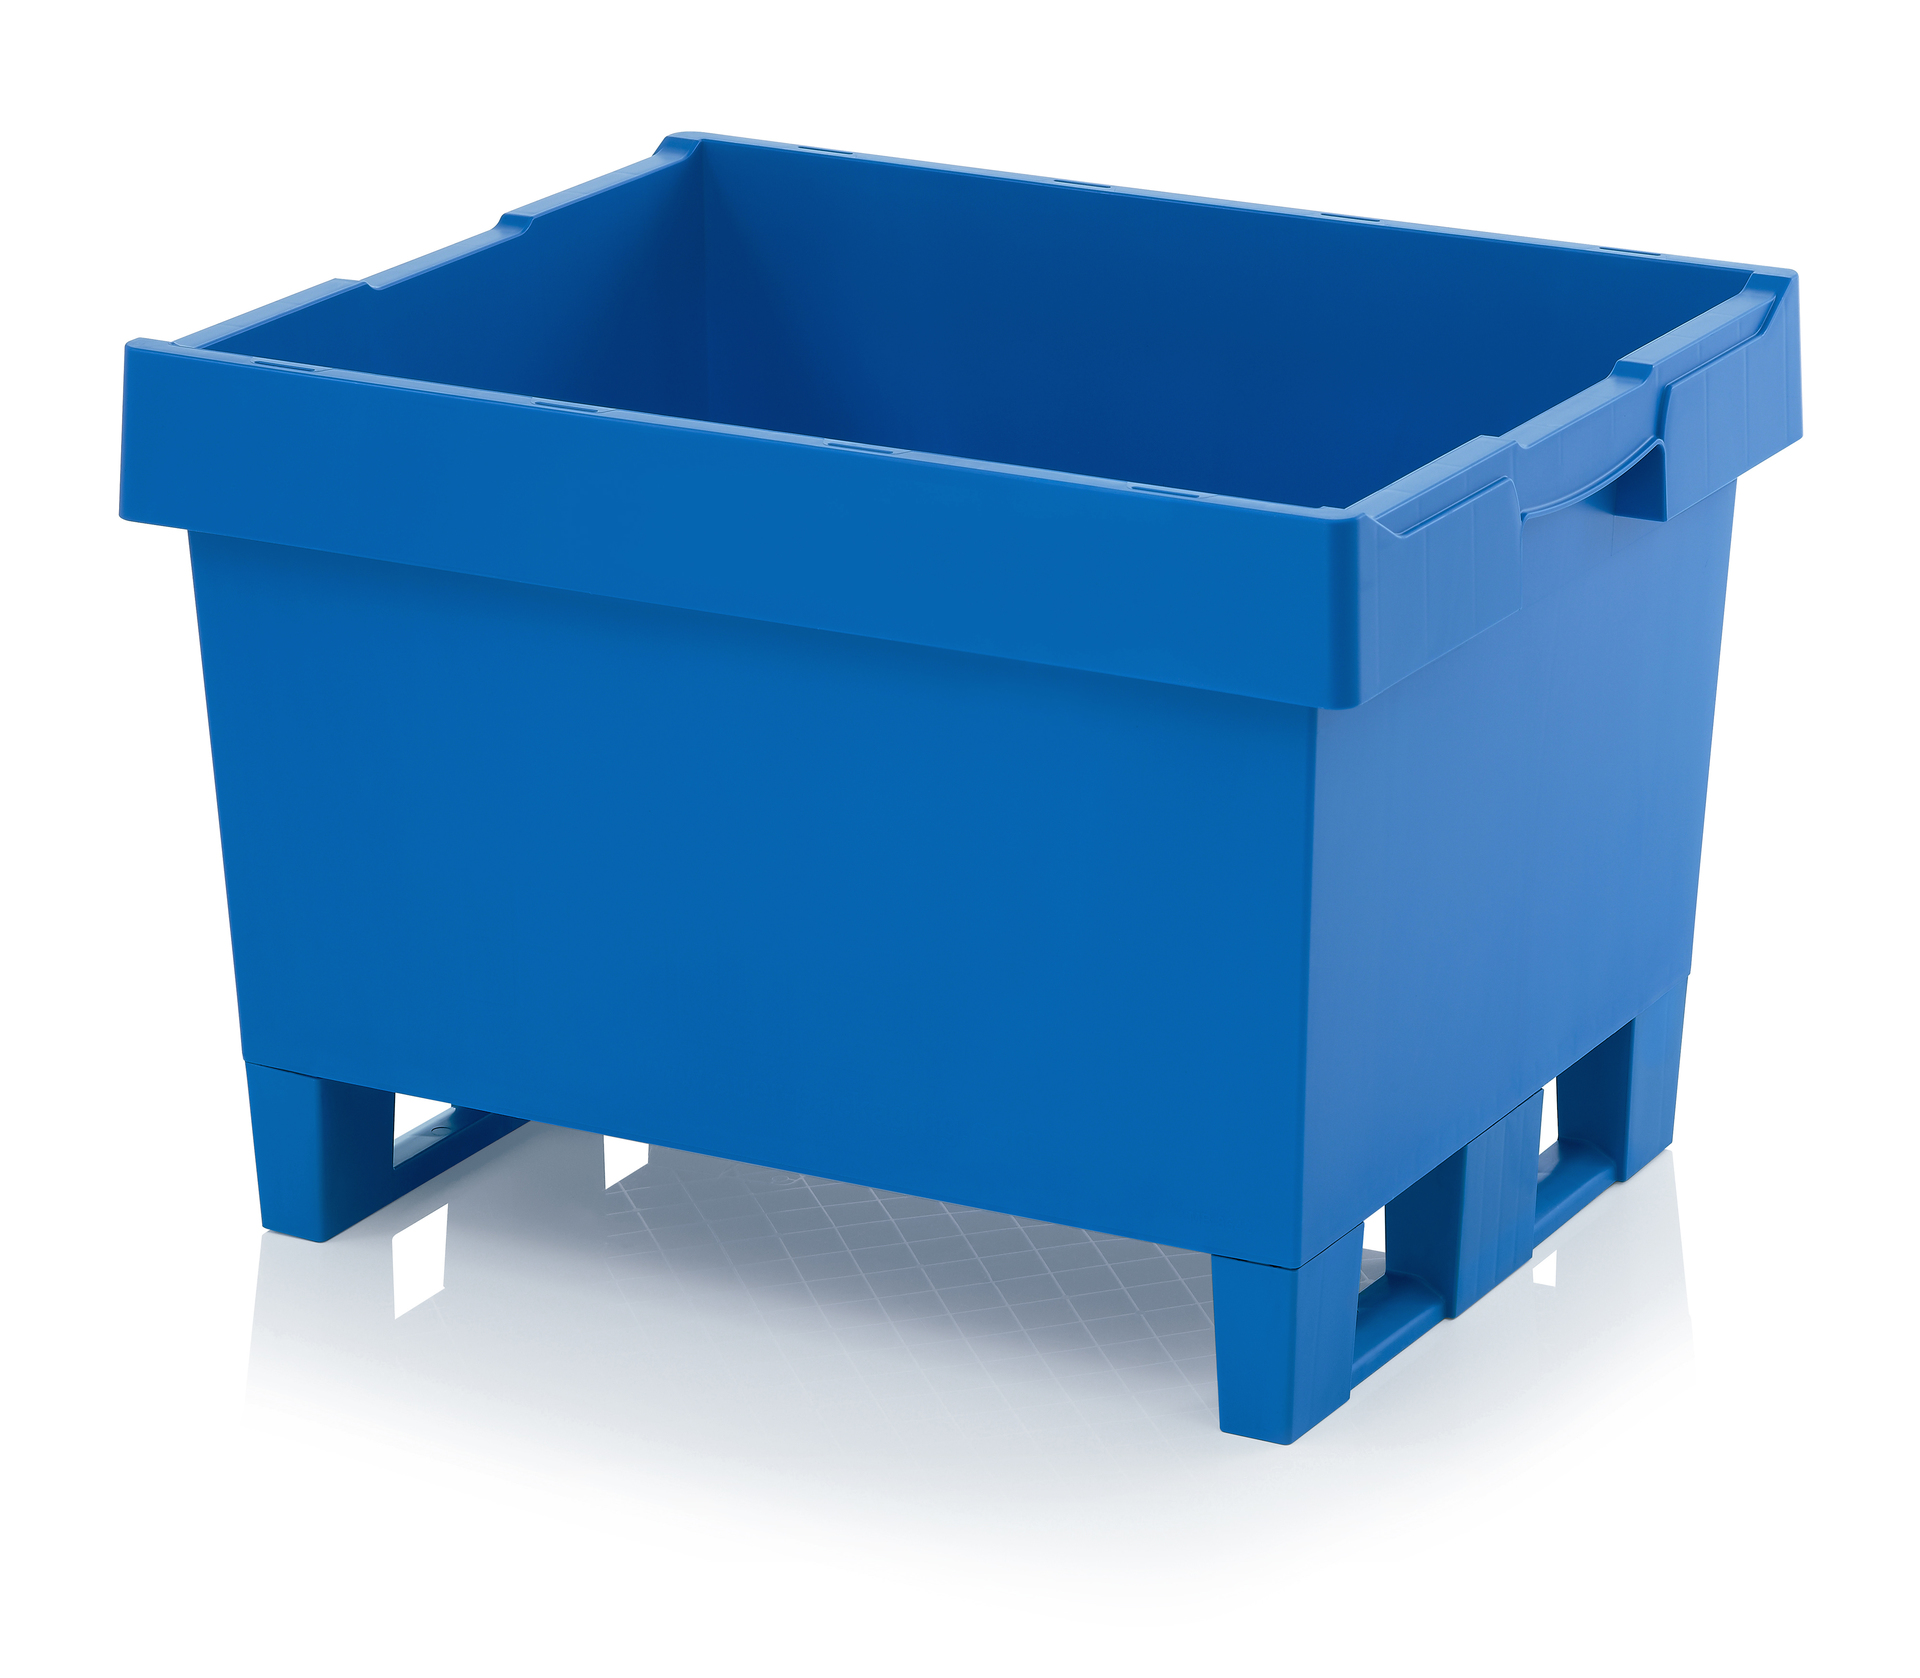 Reusable containers MB 8642K | AUER Packaging 5486 x 4746